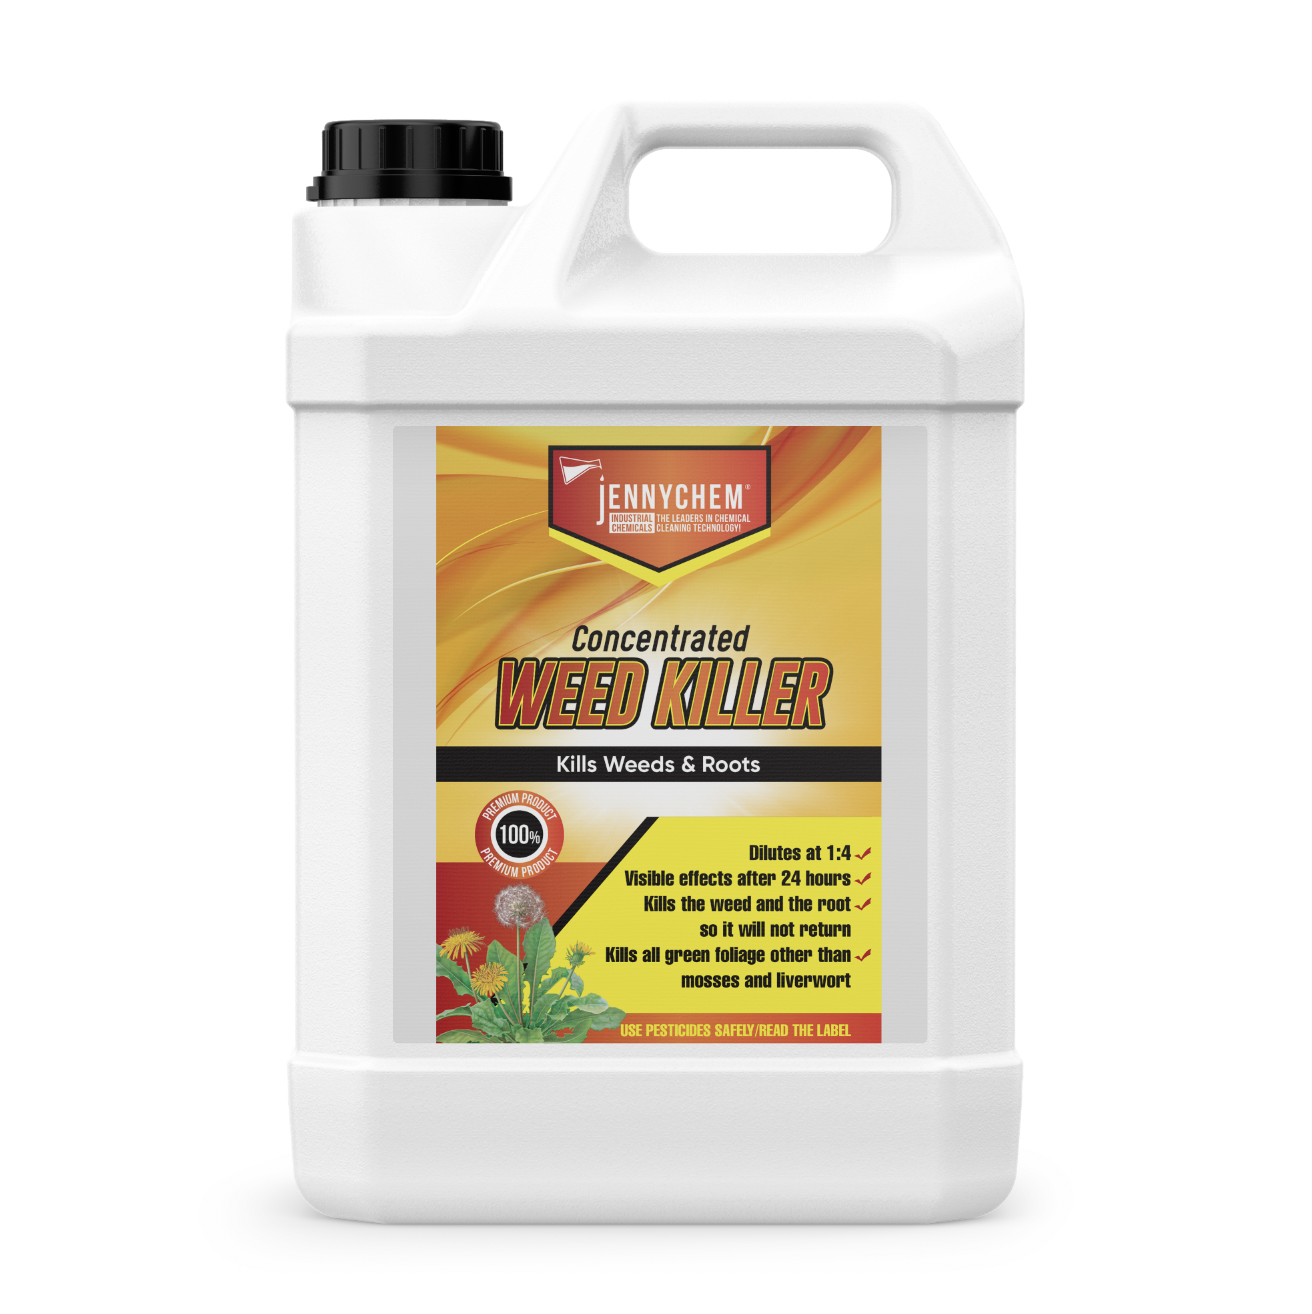 5L Industrial Strength Total Weed Killer - Super Concentrated Formula